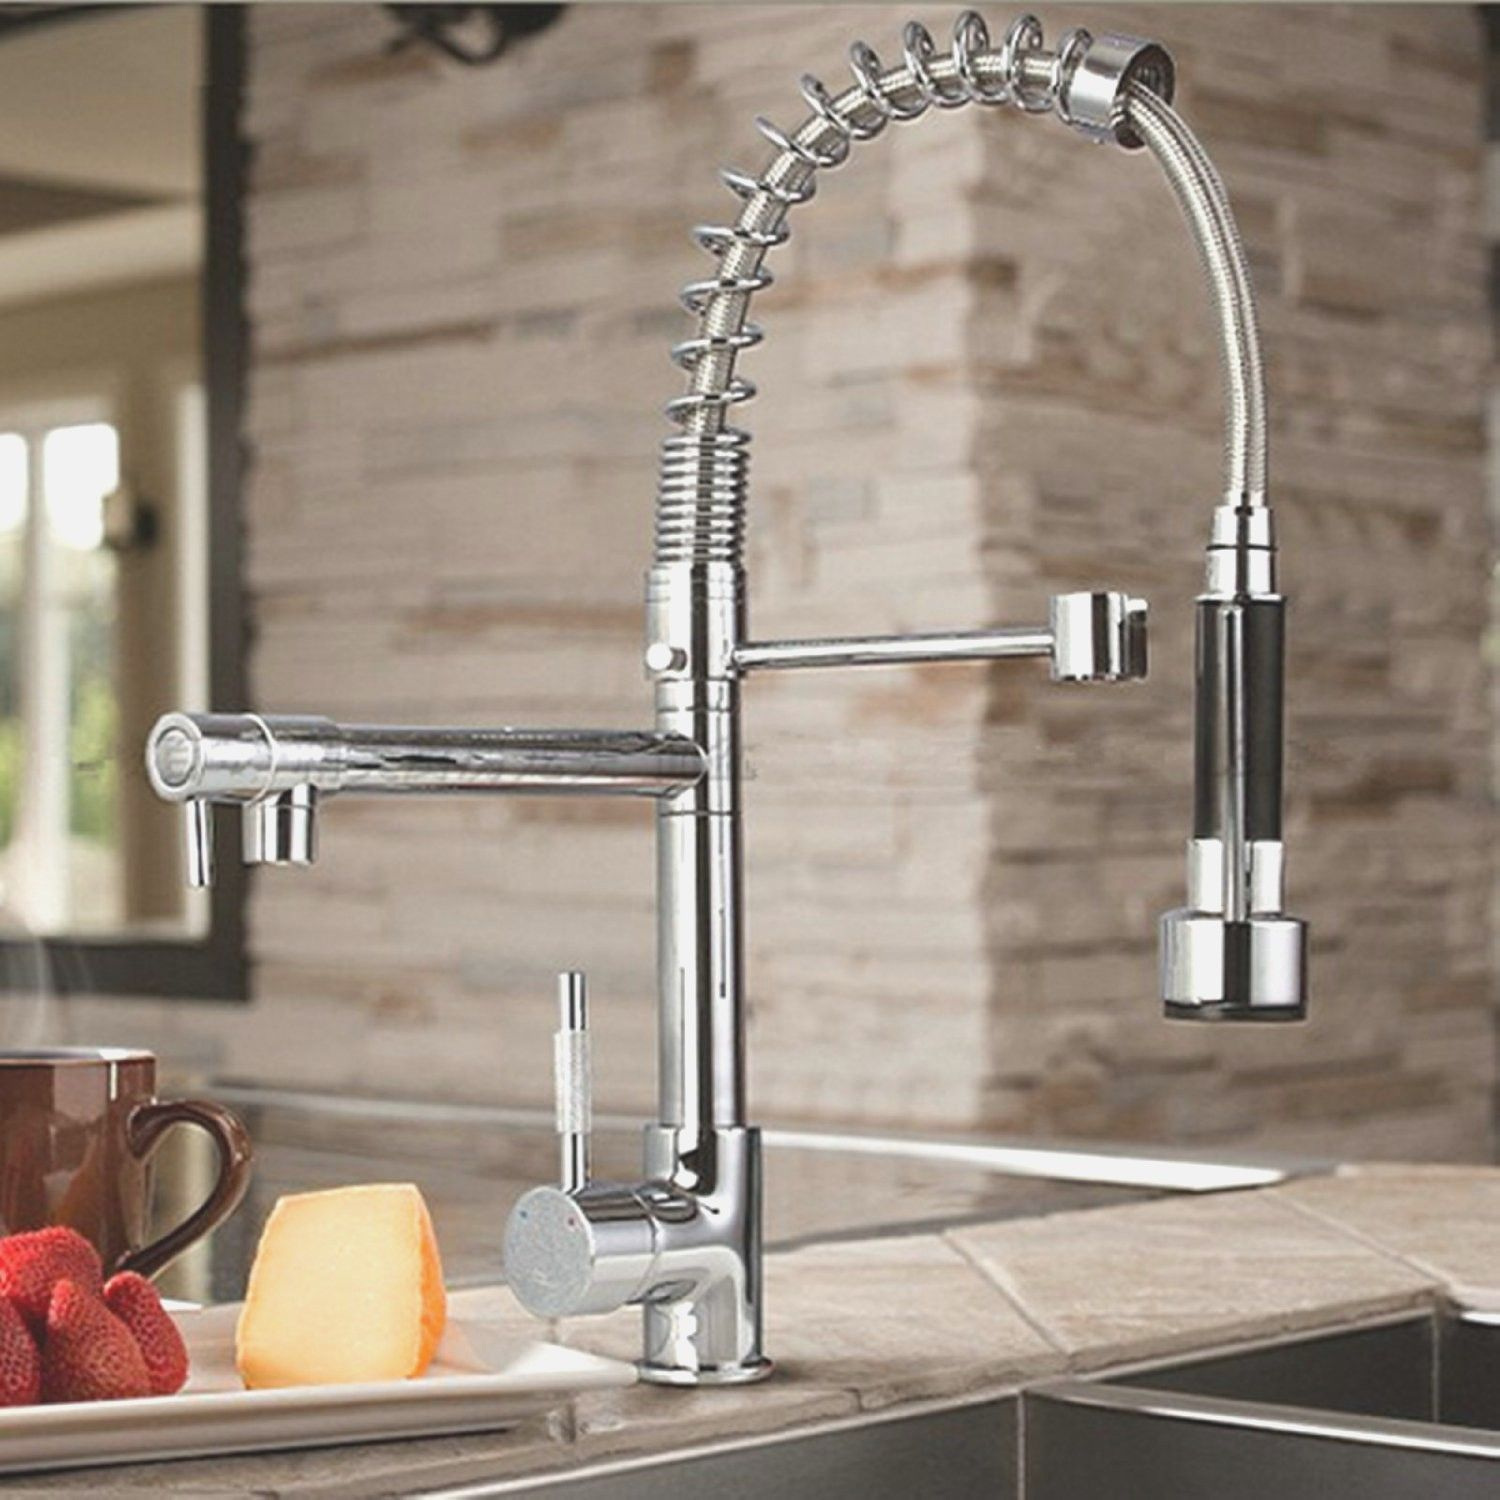 Kitchen Sink Faucet with Sprayer - home depot kitchen sink faucet ...